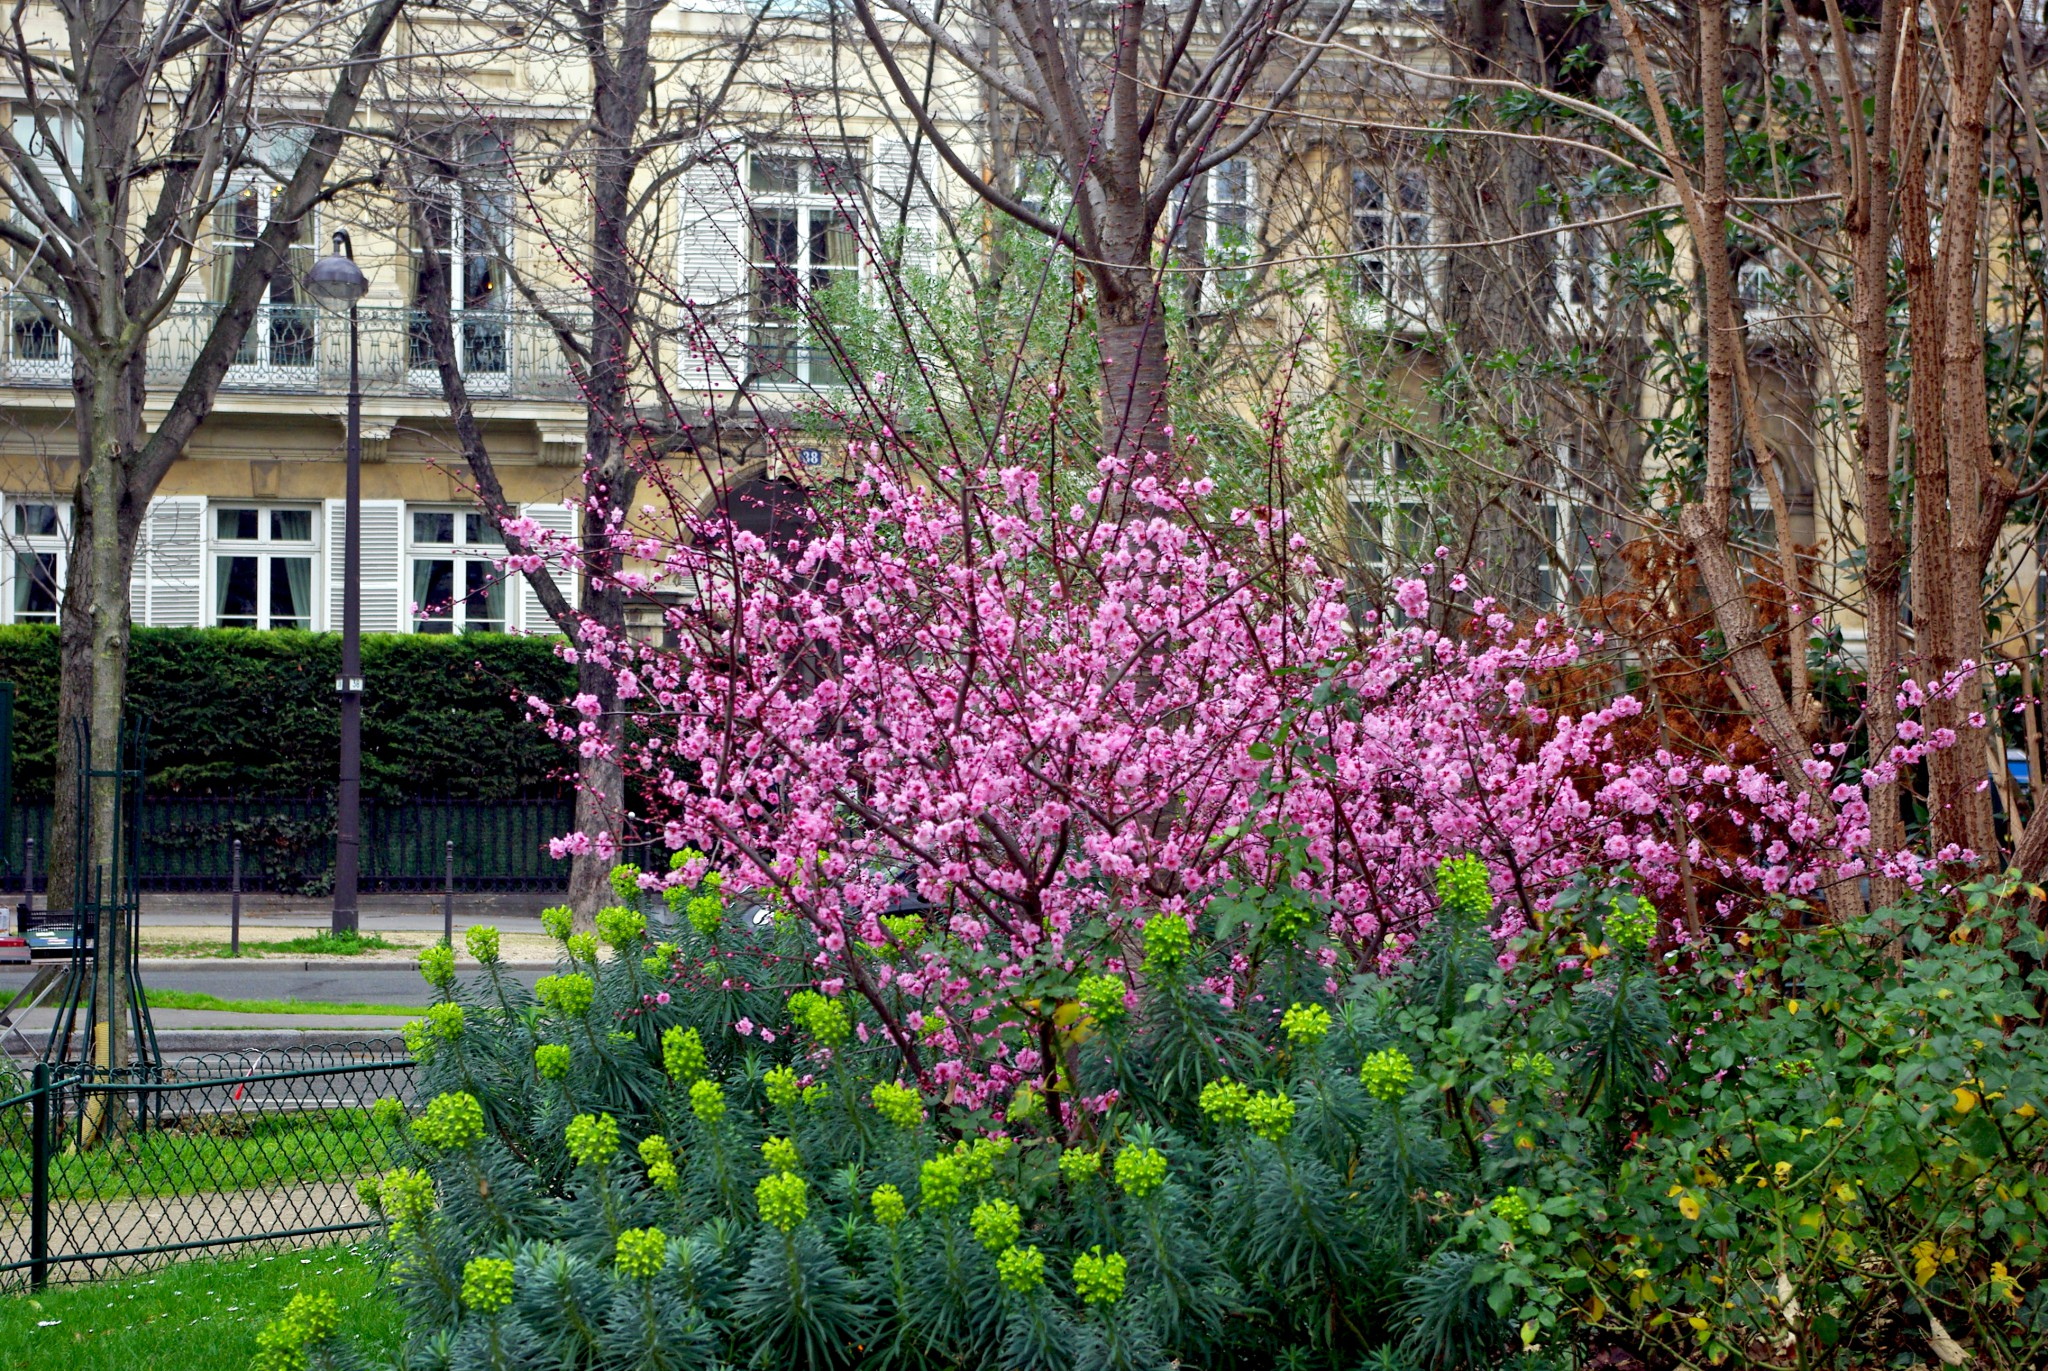 Spring in February in Paris - Jardins des Champs-Elysees 01 © French Moments